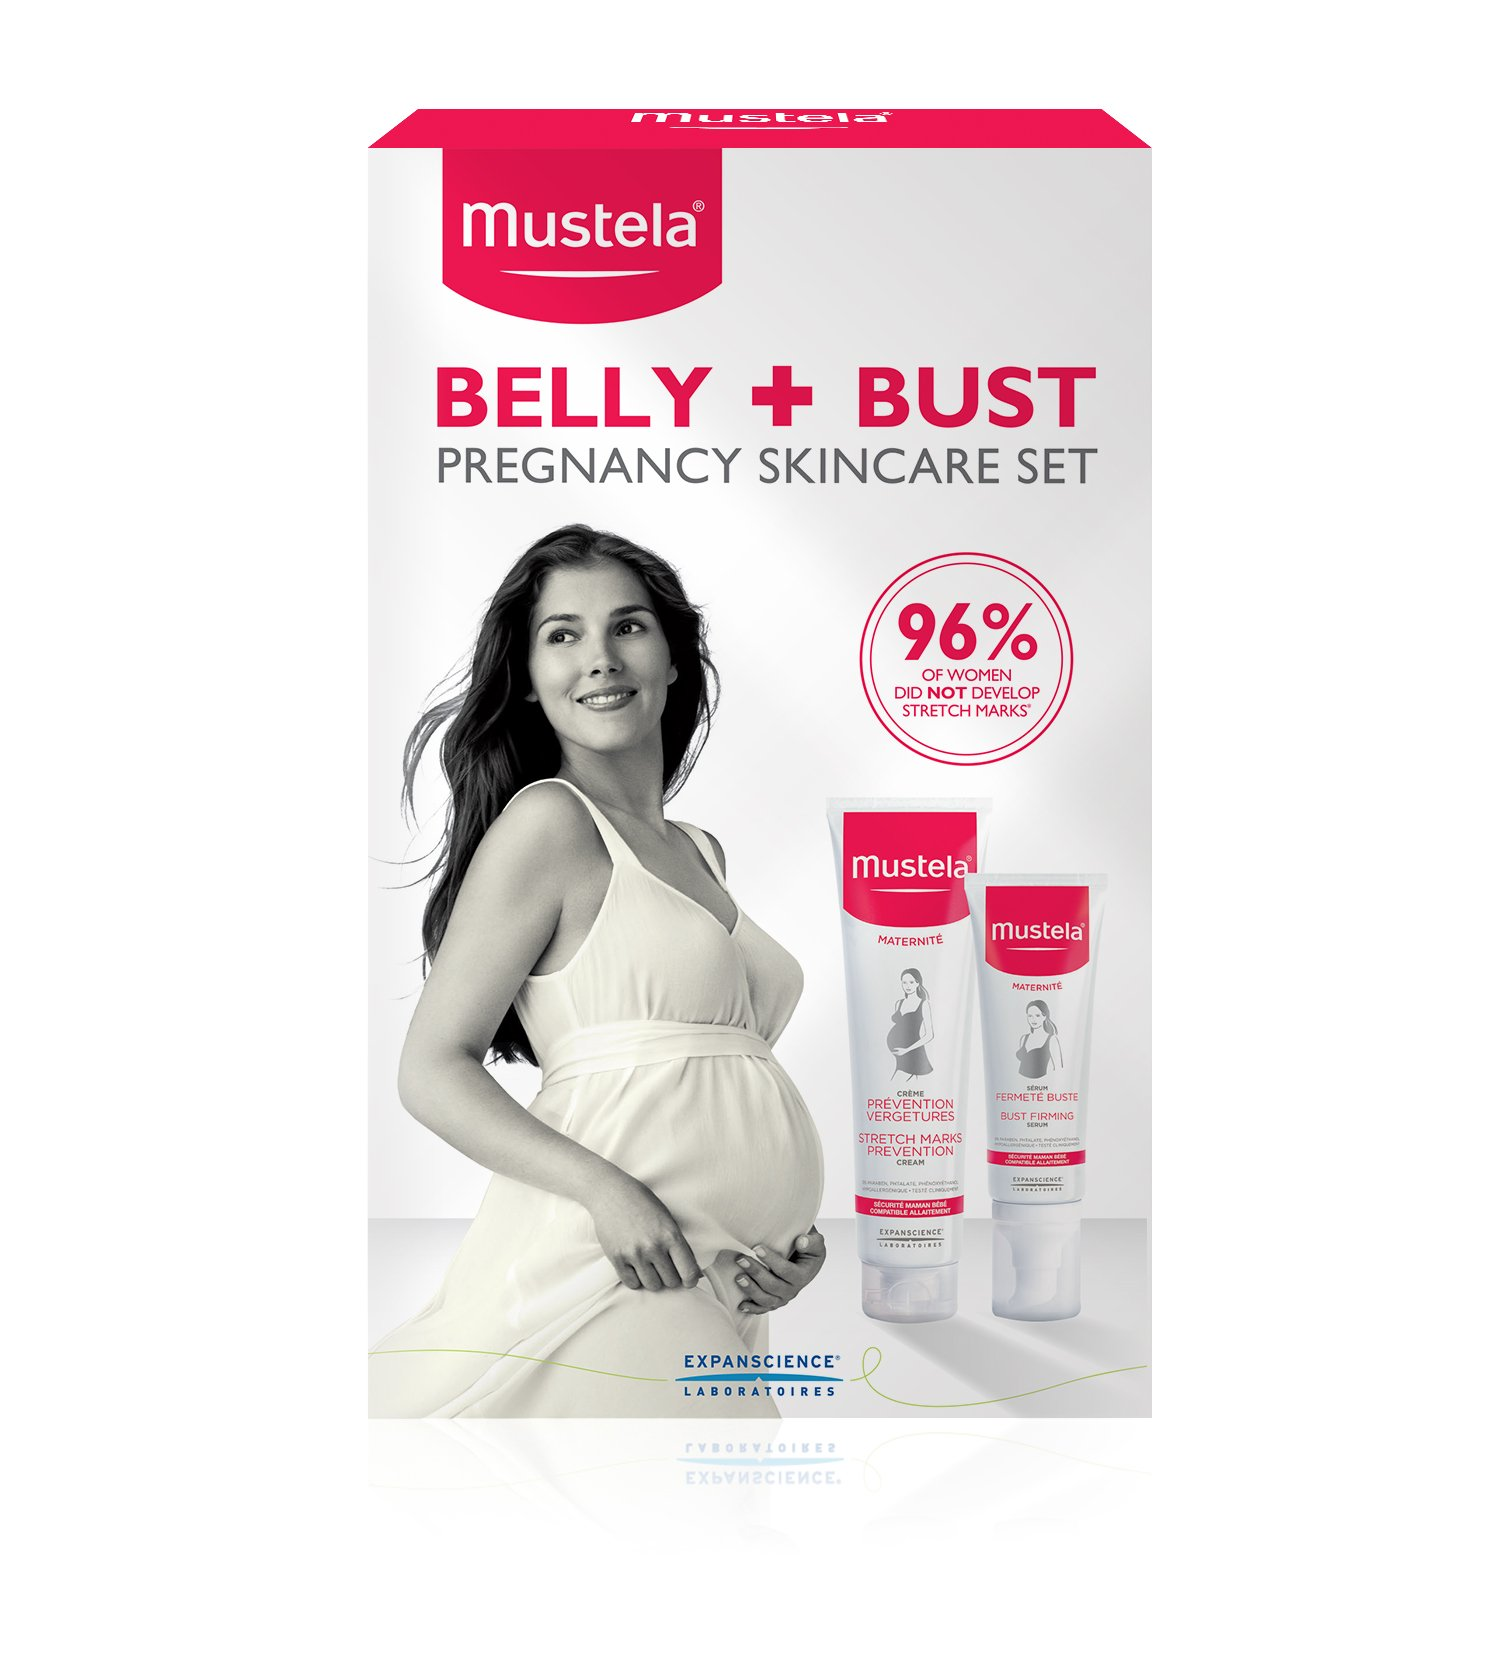 Mustela Belly and Bust Set, Pregnancy and Postpartum Skincare Set with Bust Firming Serum and Stretch Mark Prevention Cream, Hypoallergenic, 2 Items